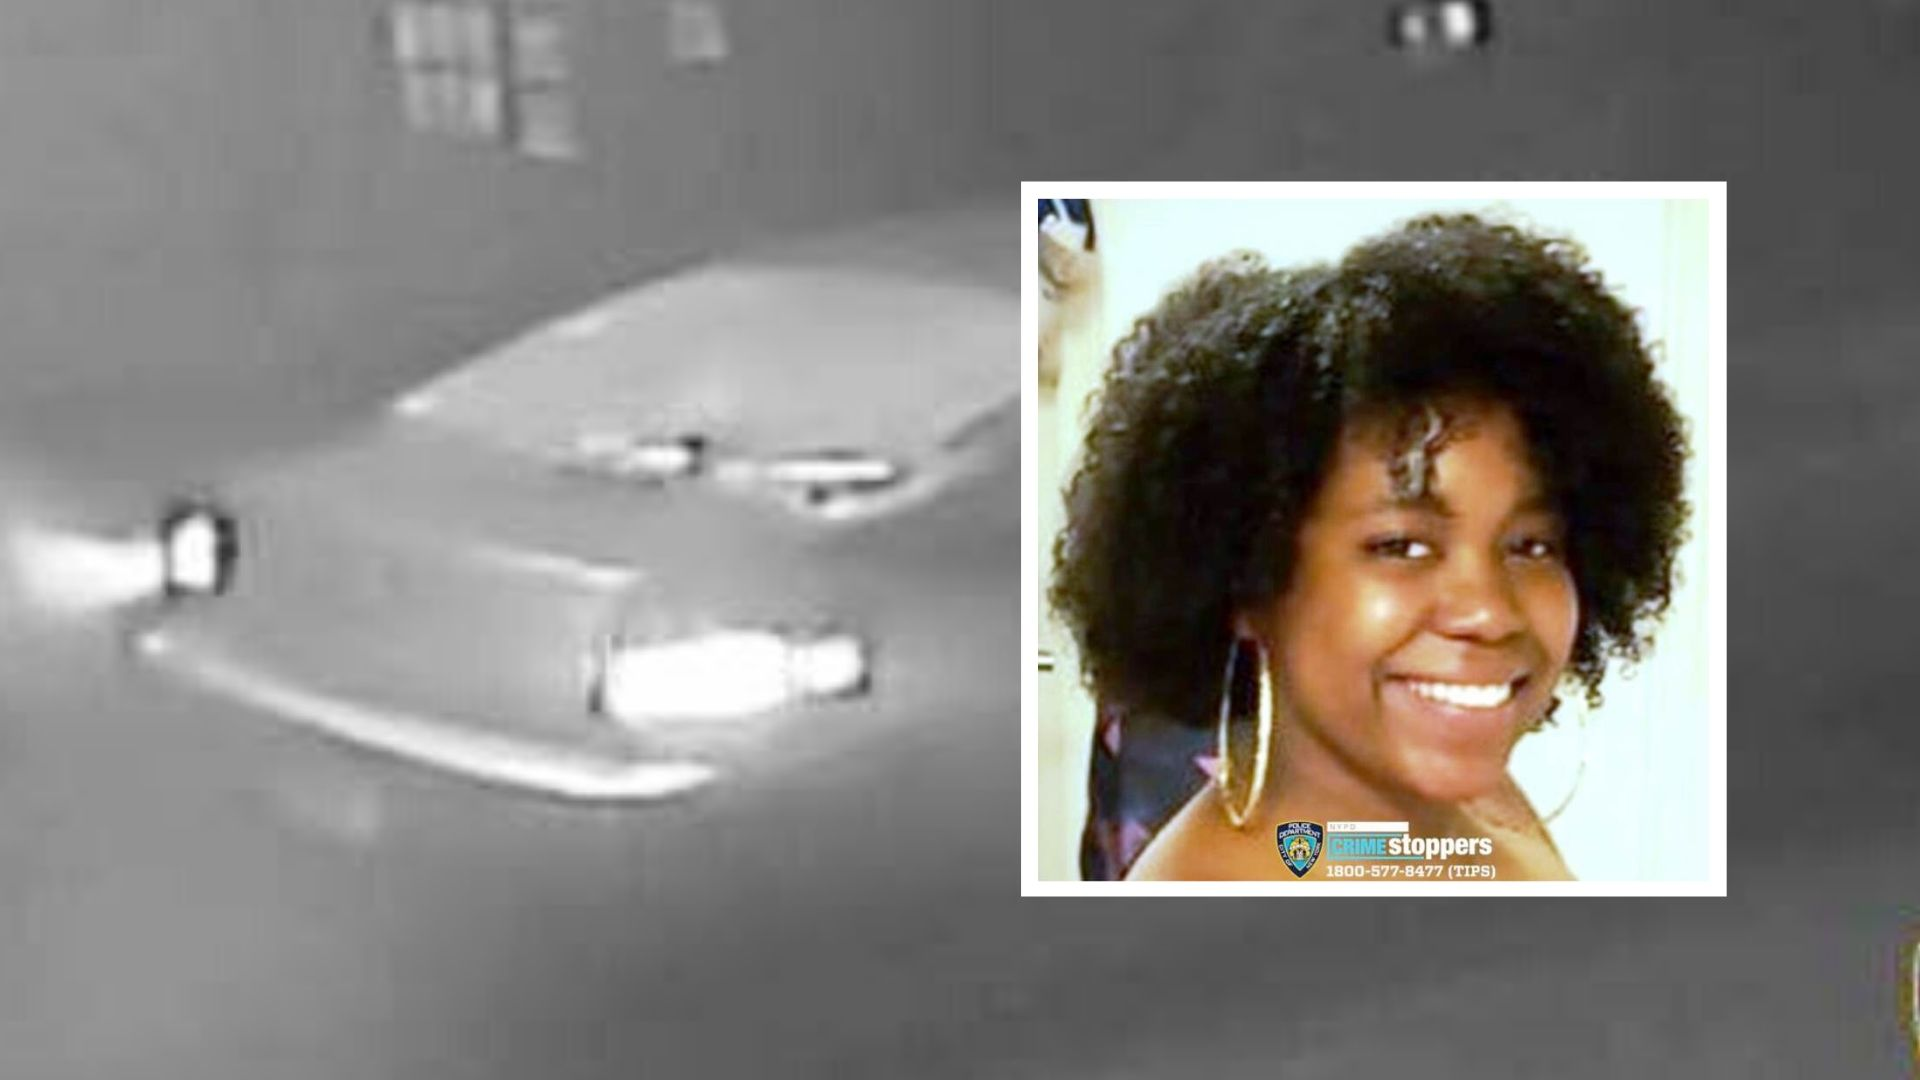 Video Shows An Apparent Abduction But Sources Say The Bronx Teen Now Home Was Not Kidnapped